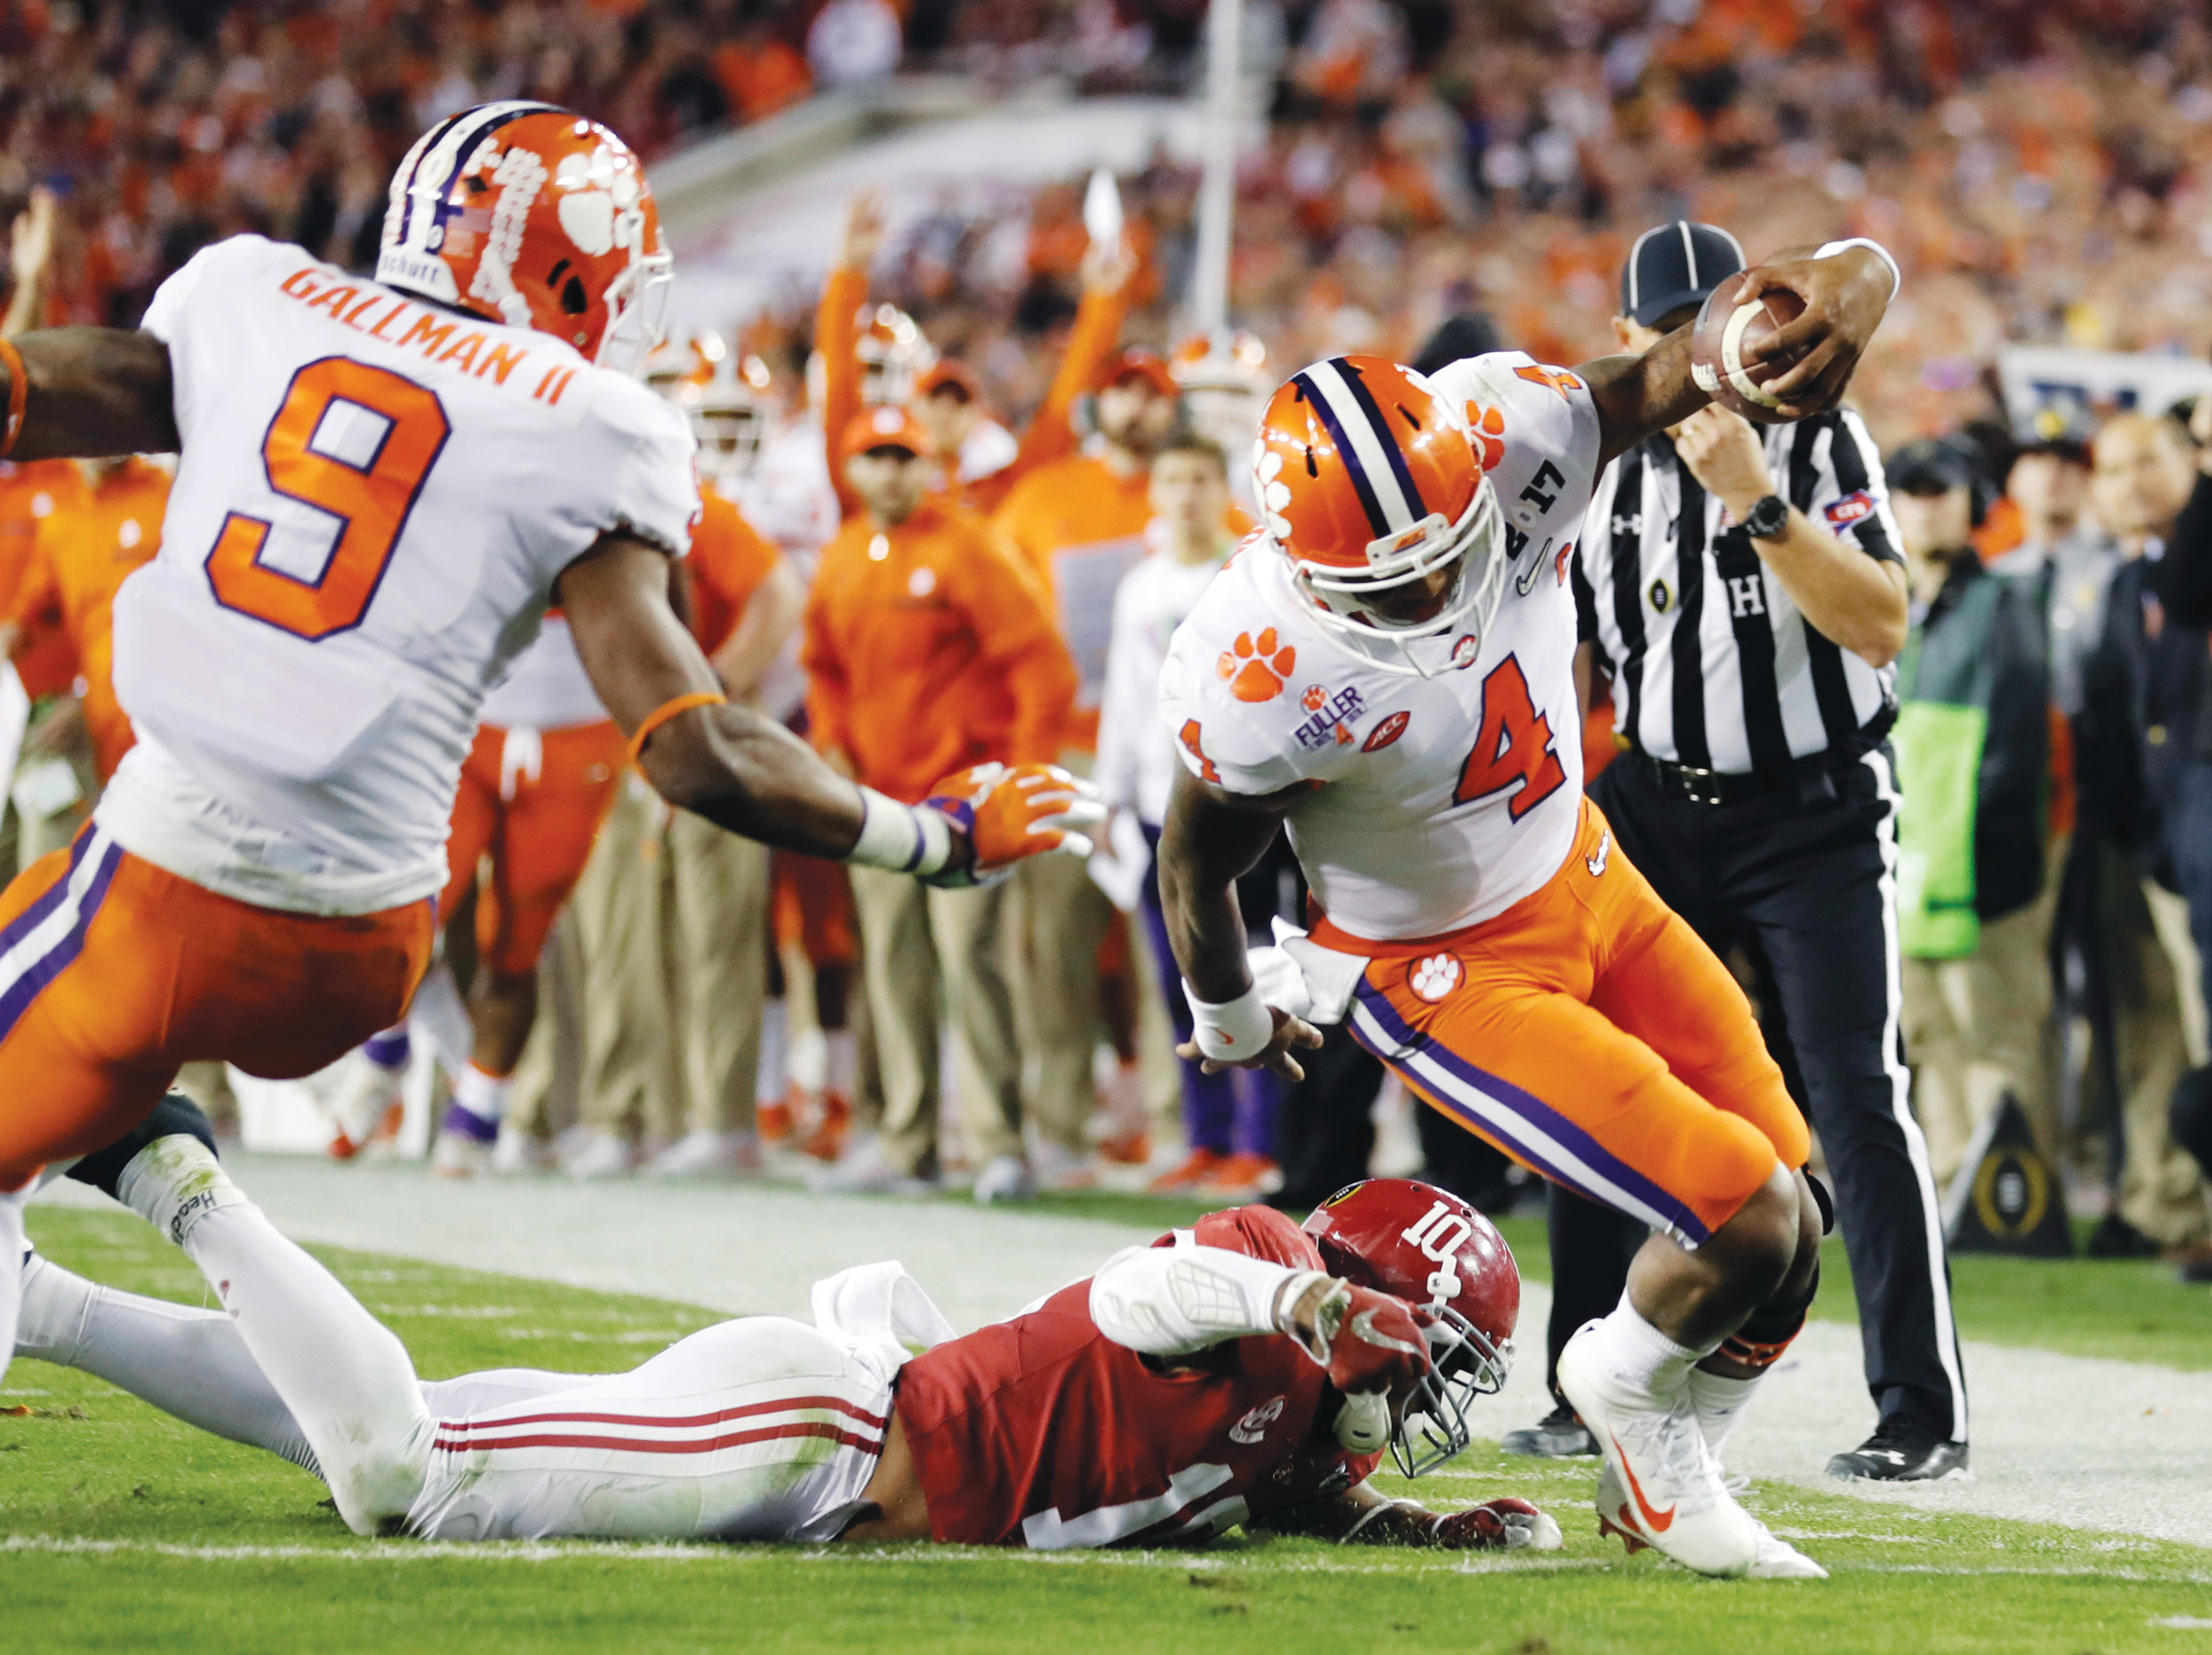 Clemson quarterback Deshaun Watson runs for a touchdown during the Tigers' 45-42 victory over Alabama in the 2017 College Football Playoff championship game. With the Pac-12 and Big Ten not represented in the 4-team playoff, a TV sports viewership analyst said interest could be tempered on the West Coast, upper Midwest and Northeast for this year's playoff.